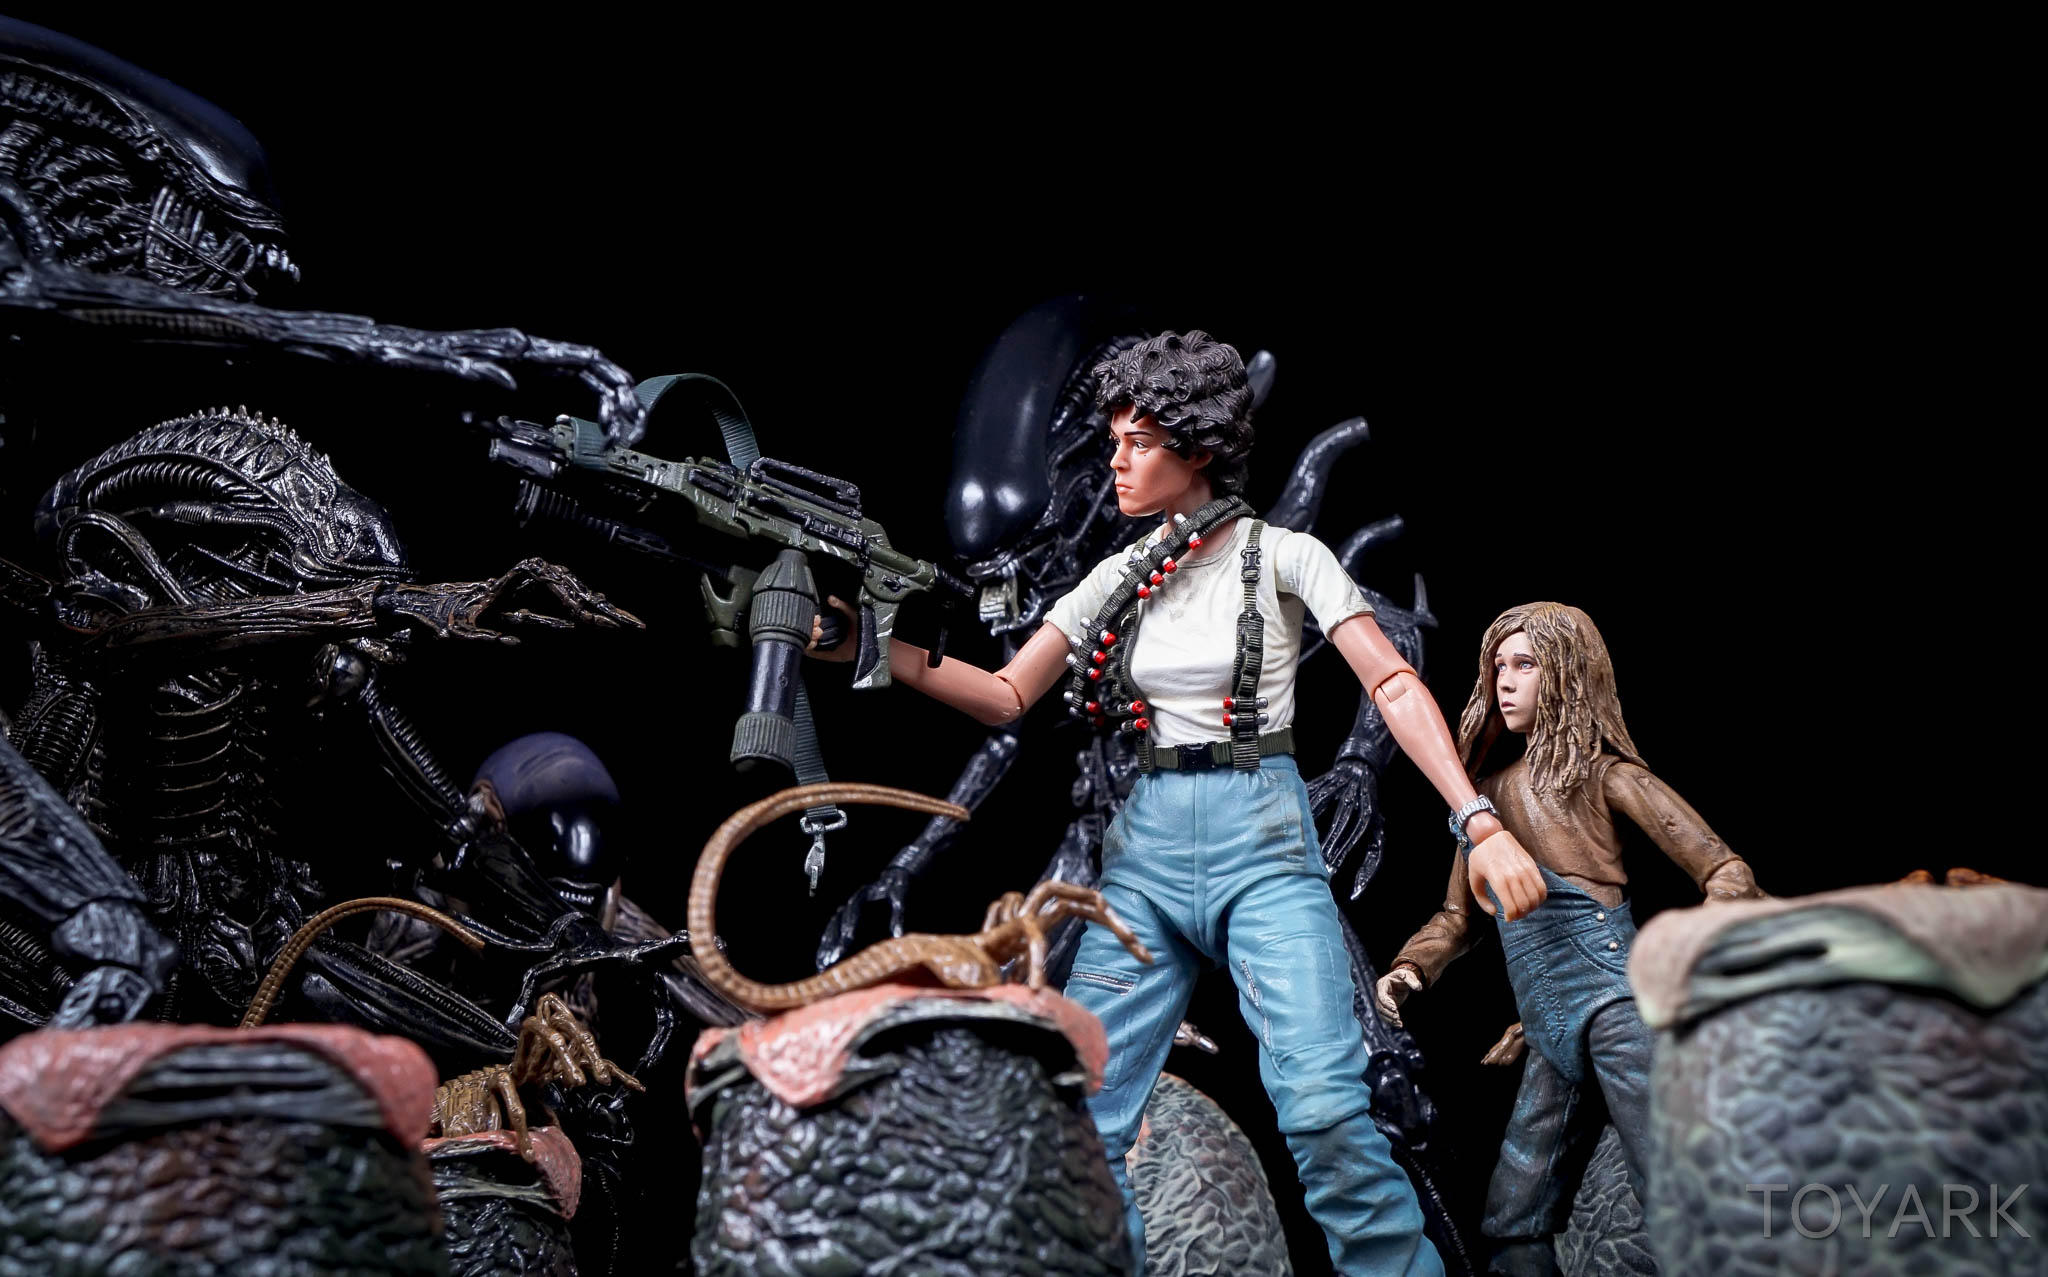 http://news.toyark.com/wp-content/uploads/sites/4/2016/08/NECA-SDCC2016-Aliens-Newt-036.jpg